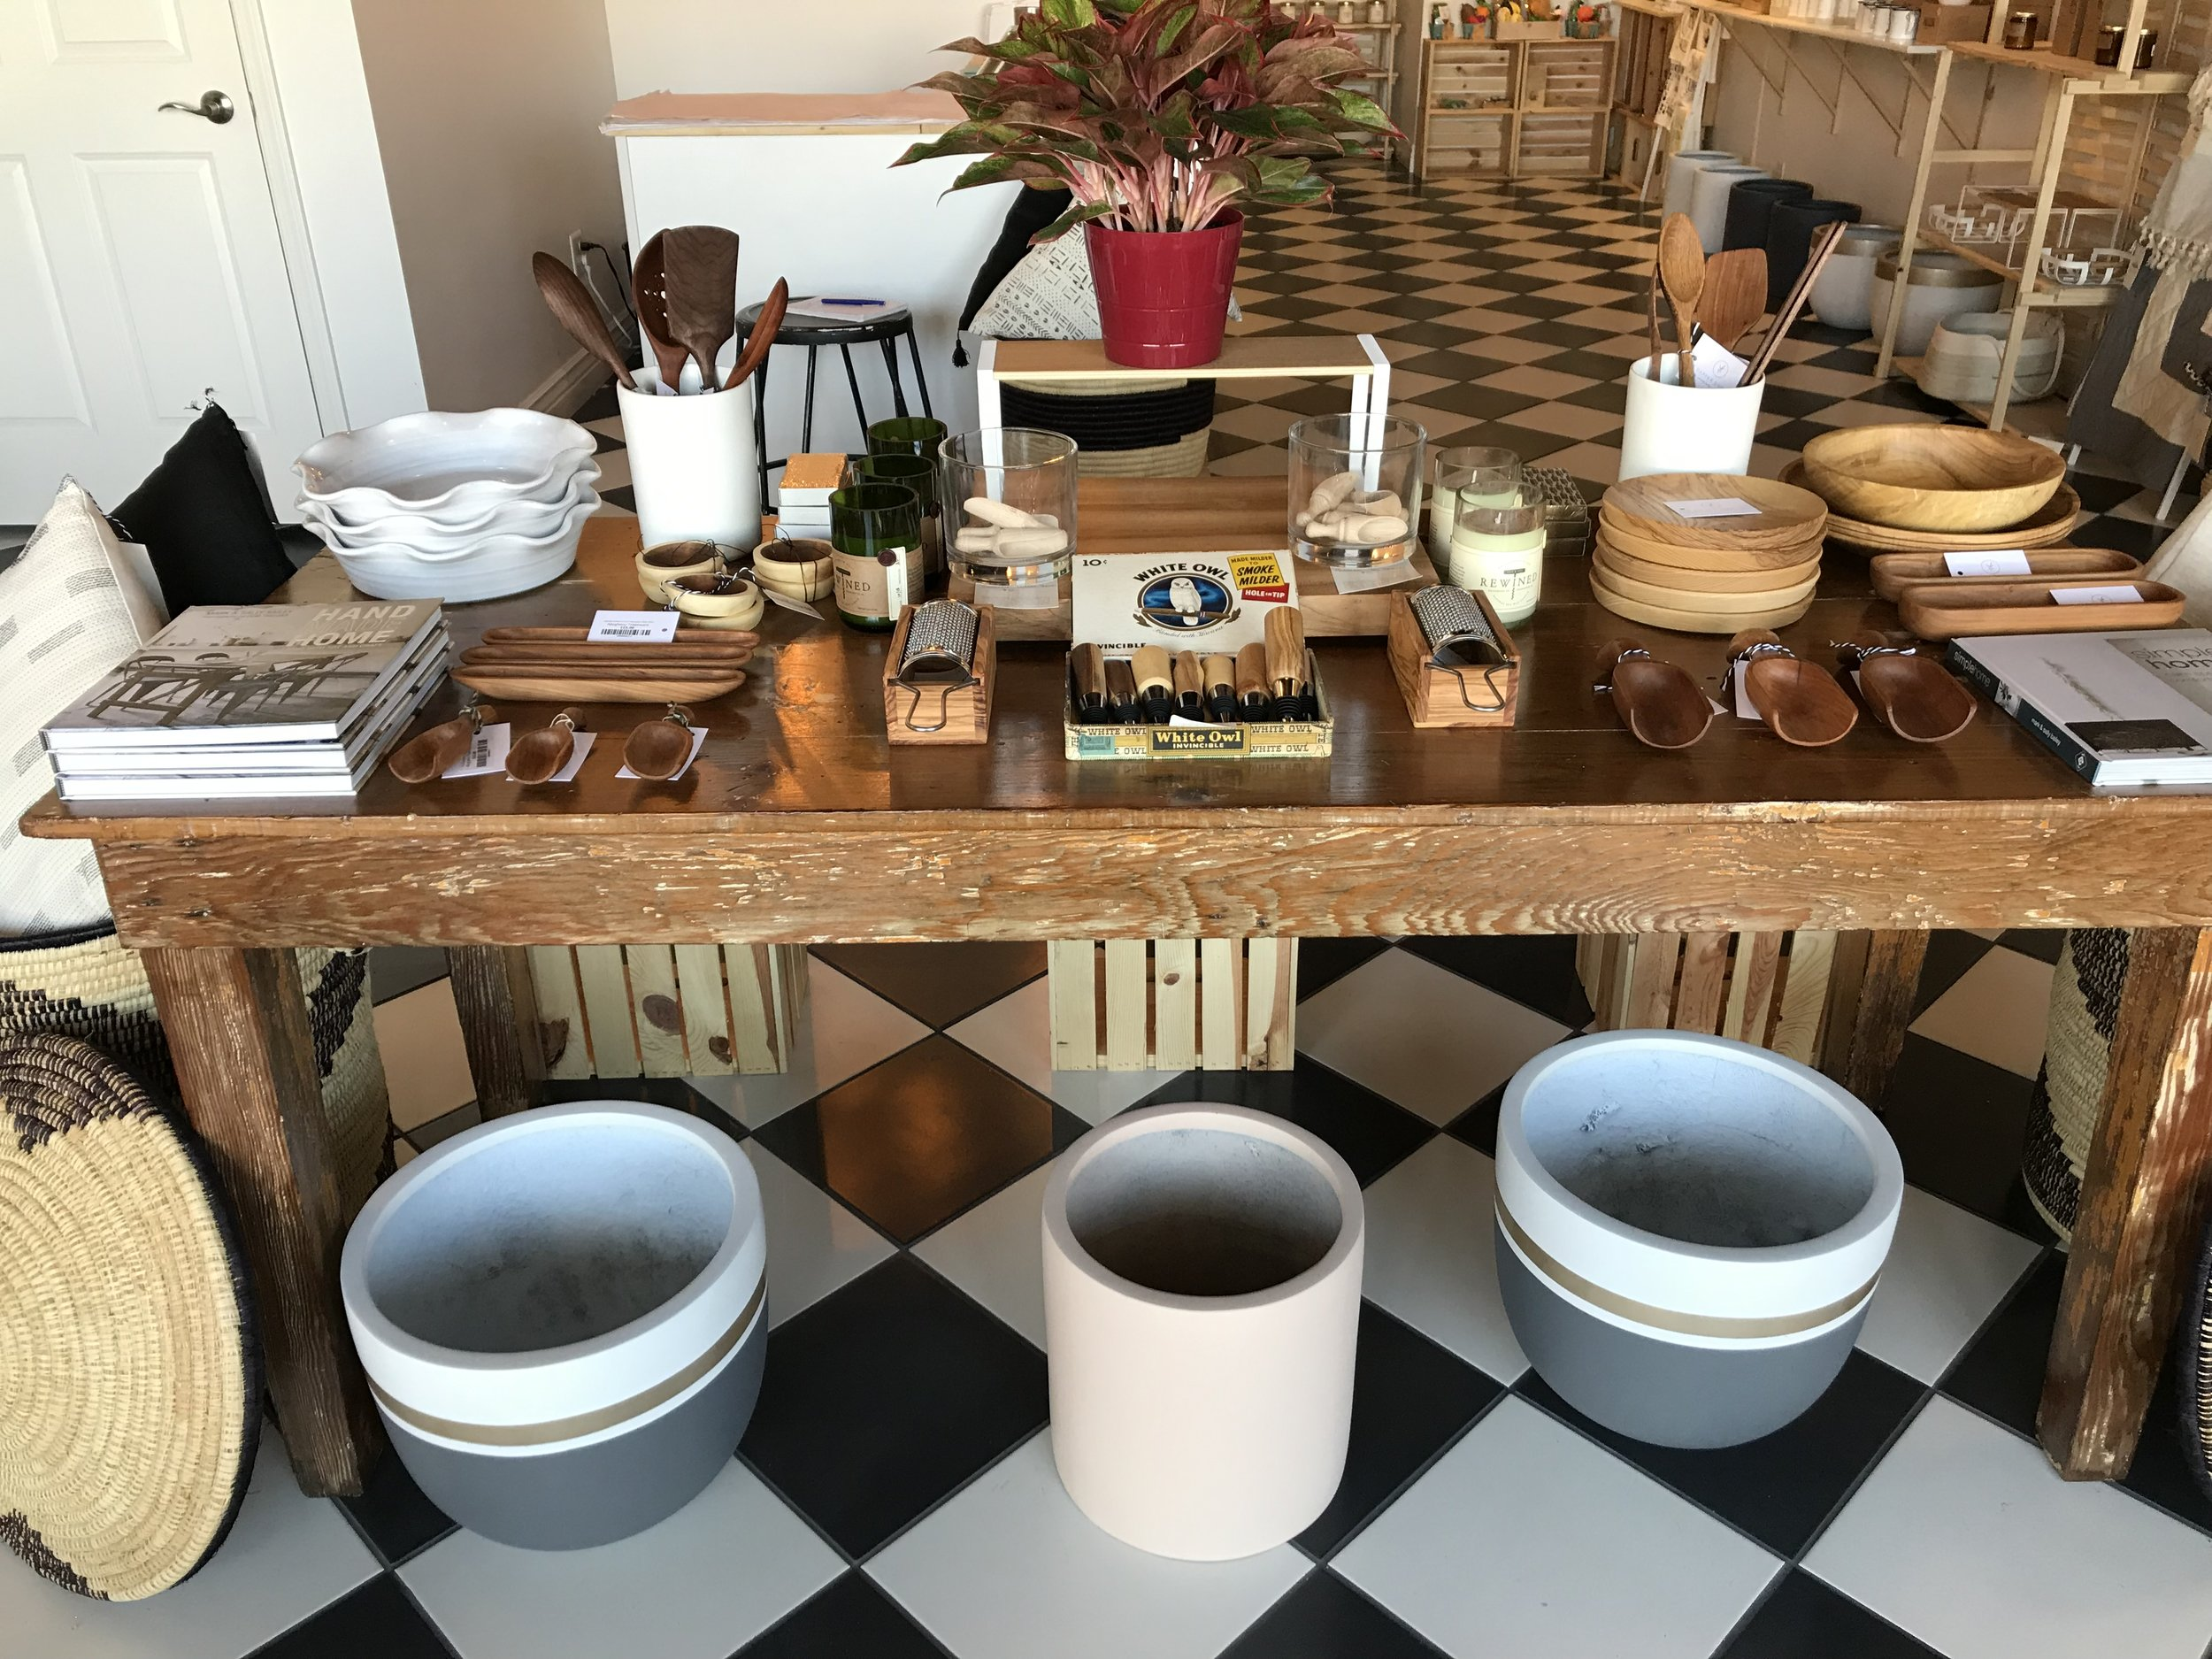 Heirloom quality pieces at The Dapper Dwelling